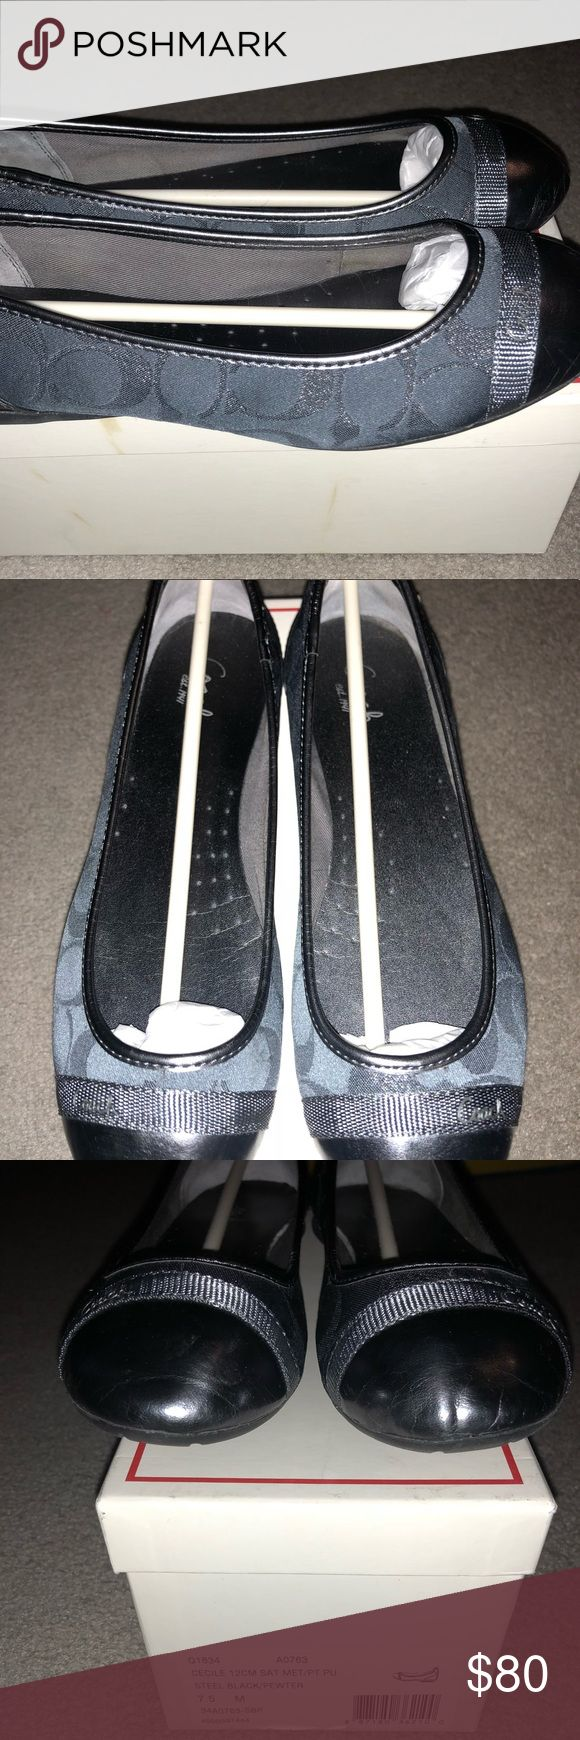 Coach flats shoes Coach flat shoes Size:7.5  Only worn once for a few hours and realized they were to tight Coach Shoes Flats & Loafers